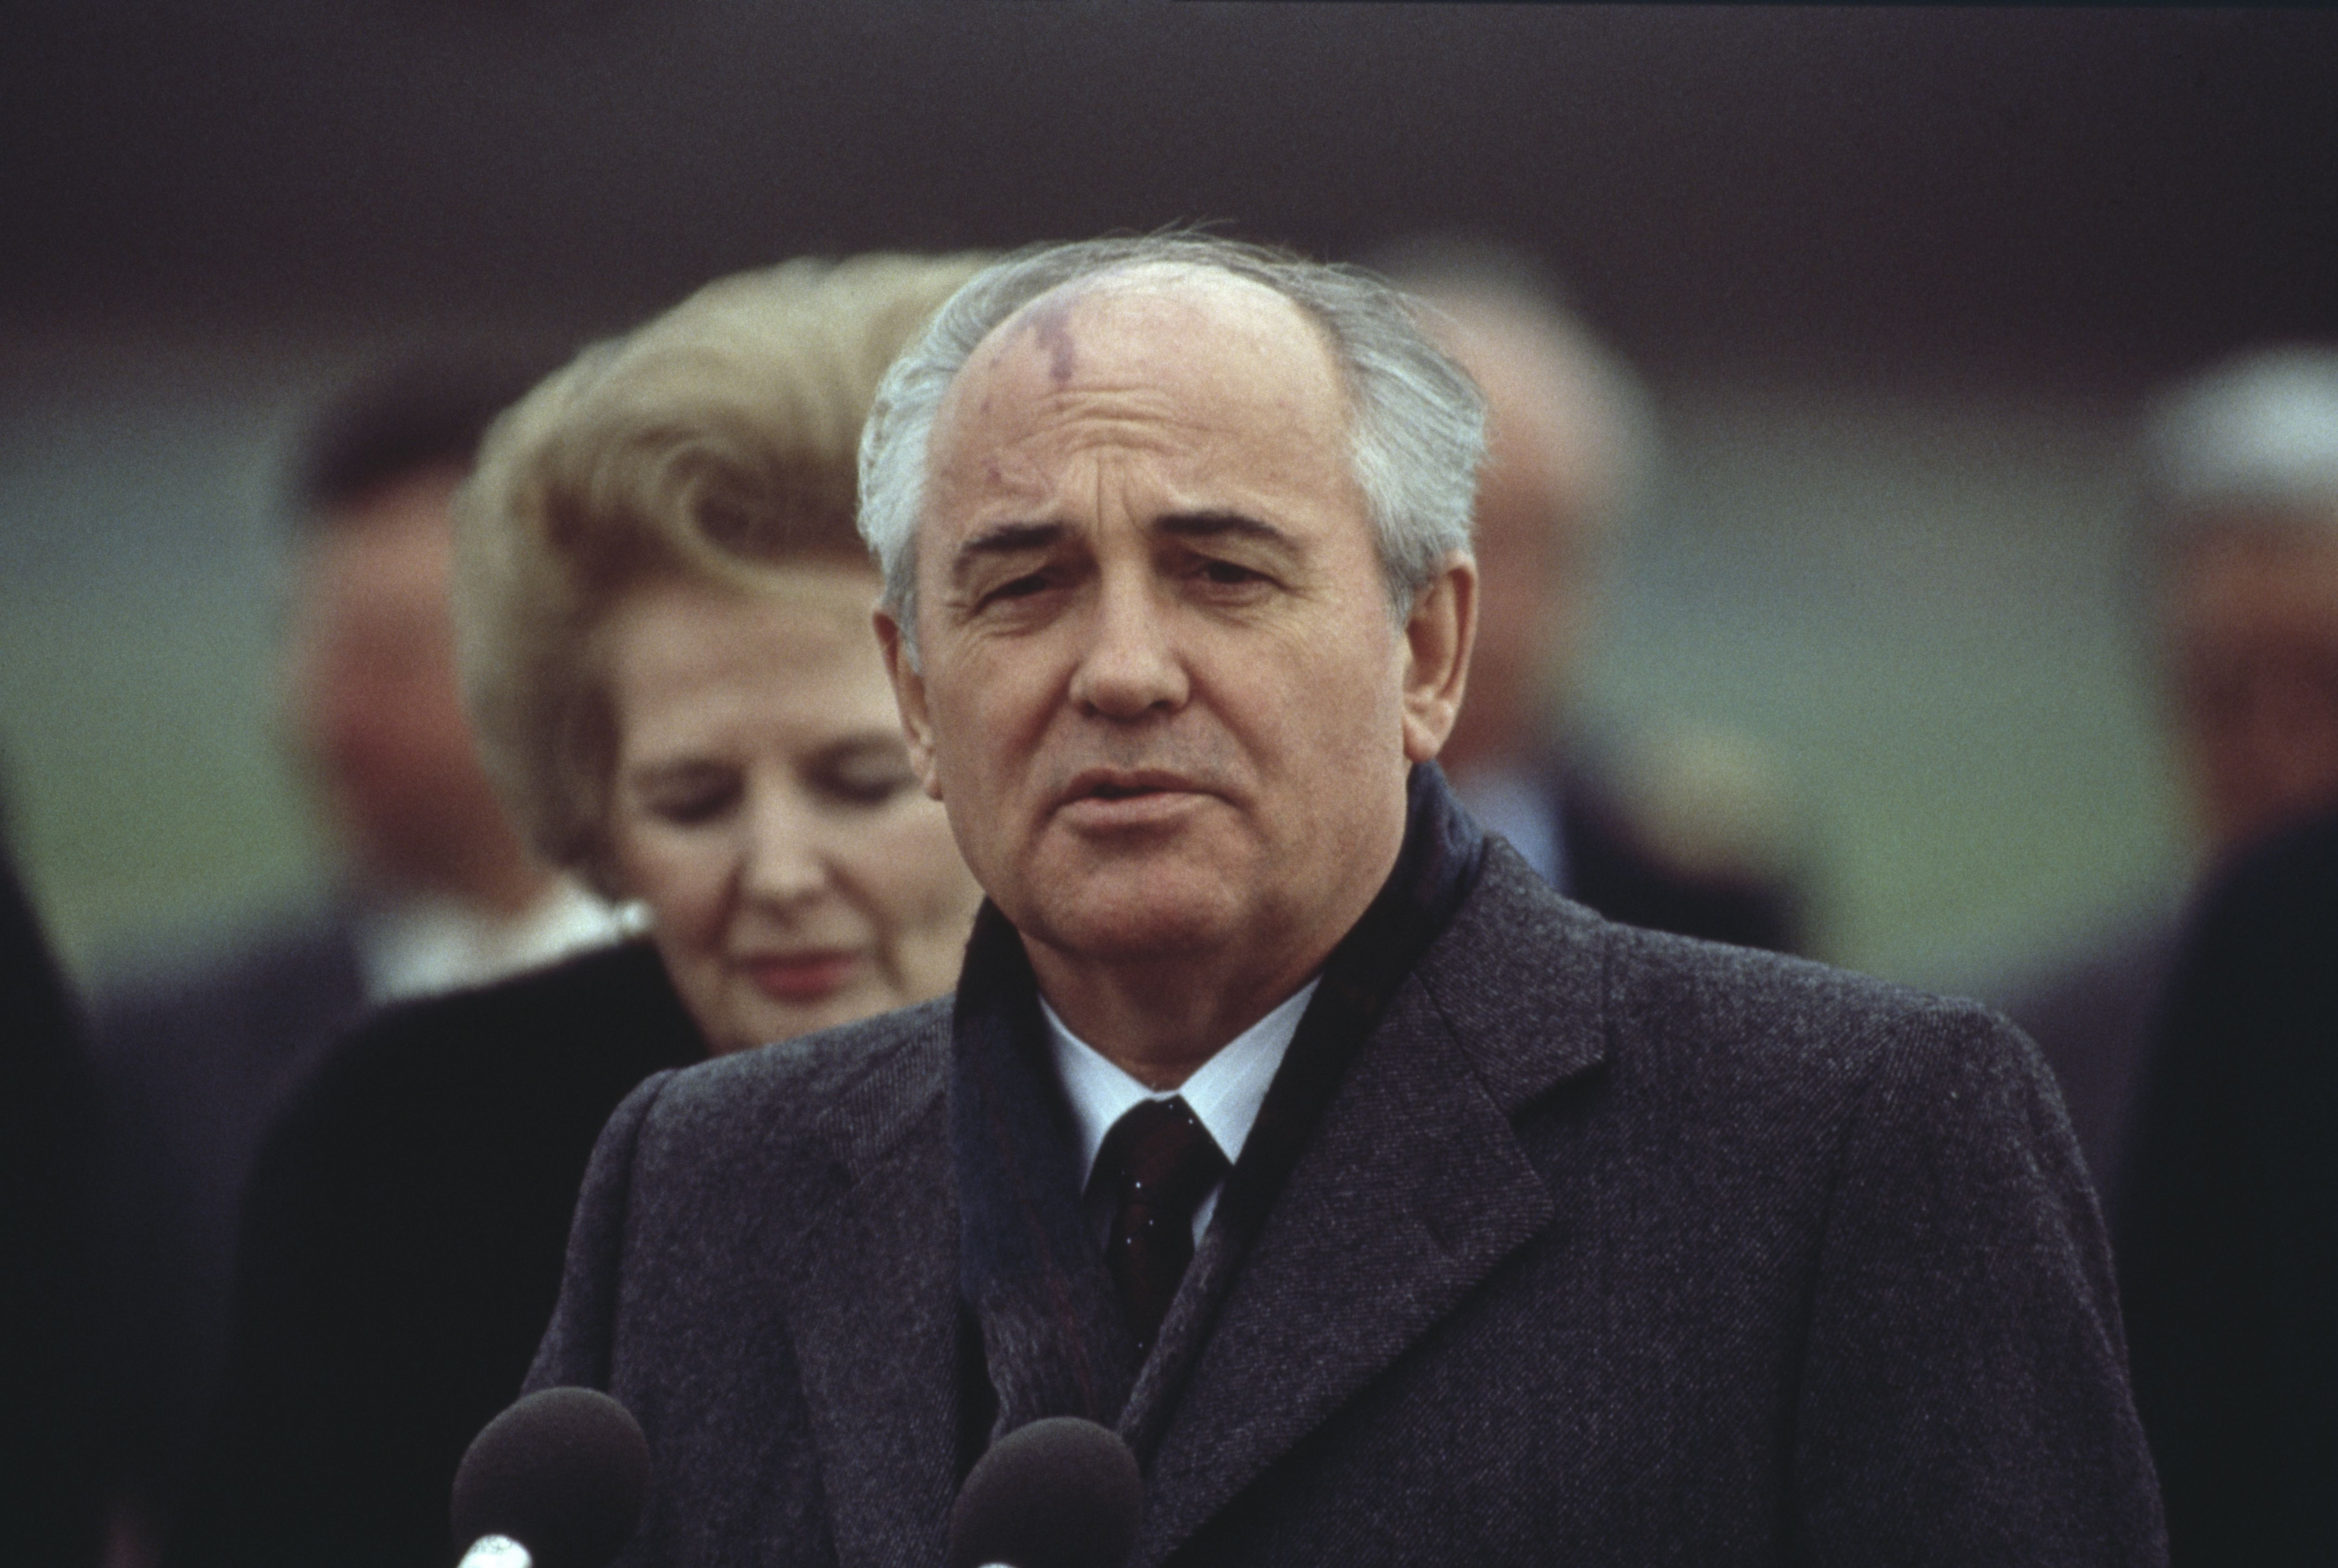 Russian leader Mikhail Gorbachev at the end of an official visit to London. (April 7, 1989)